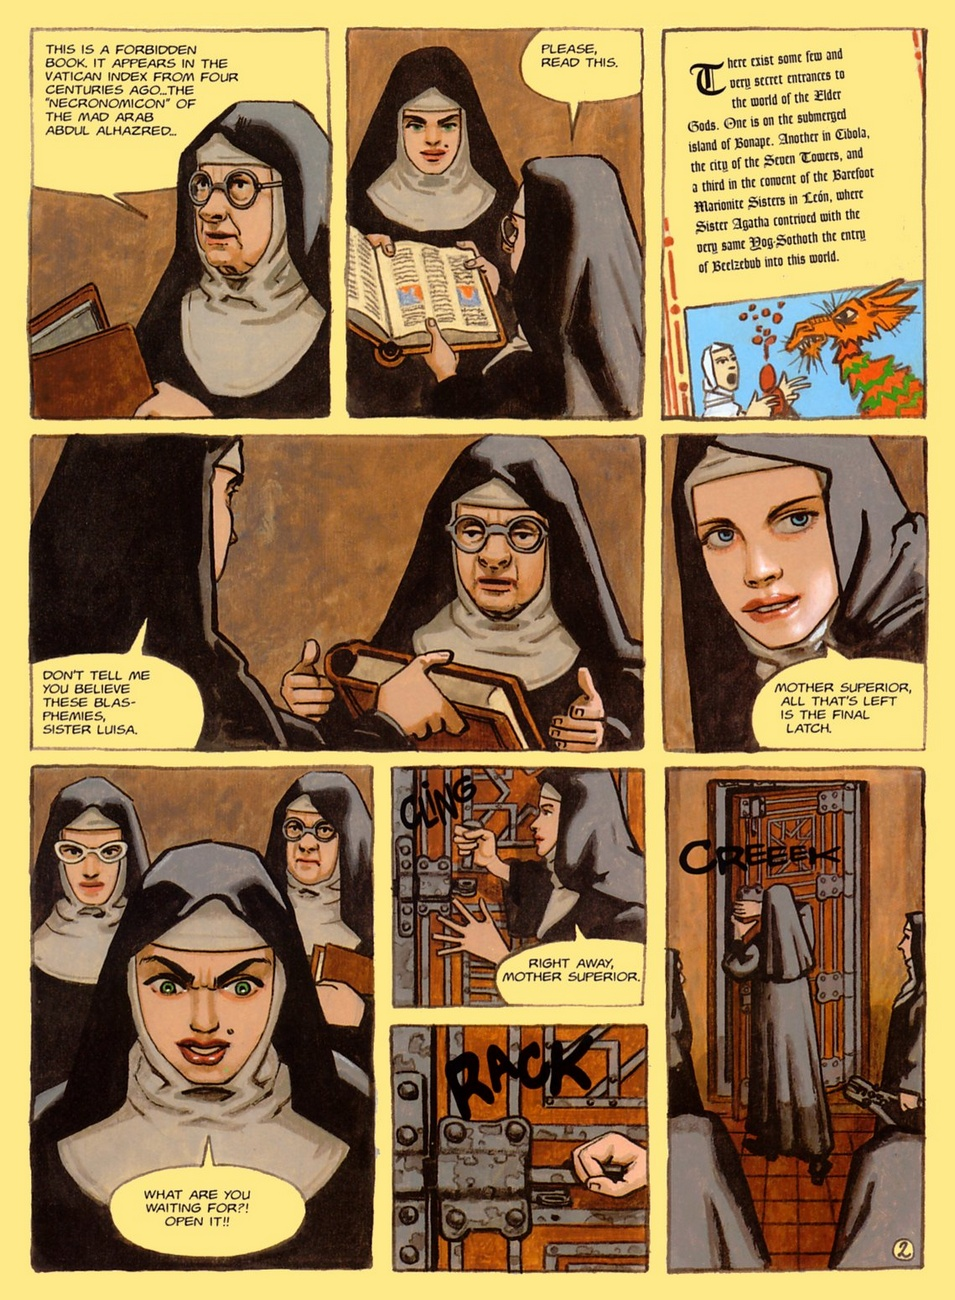 The Convent Of Hell - part 2